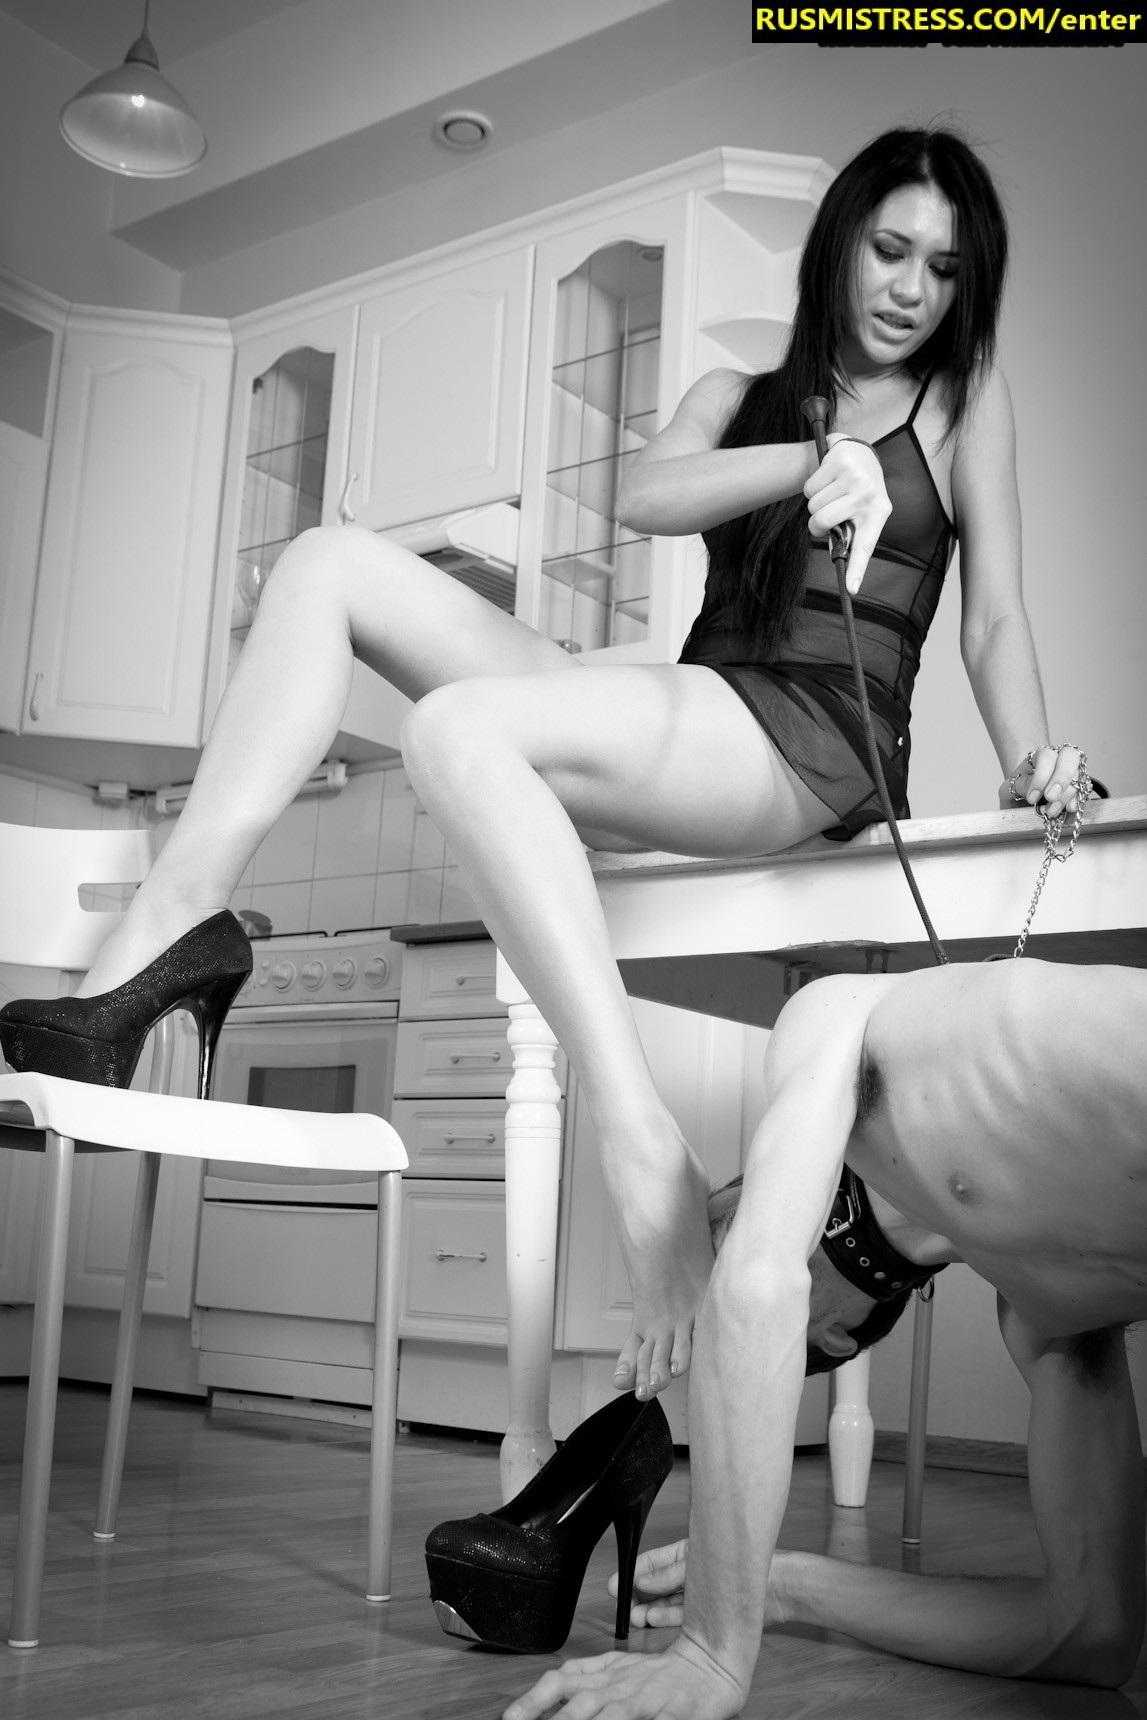 Black and white femdom porn with hot Russian mistress - peeing into slave's mouth